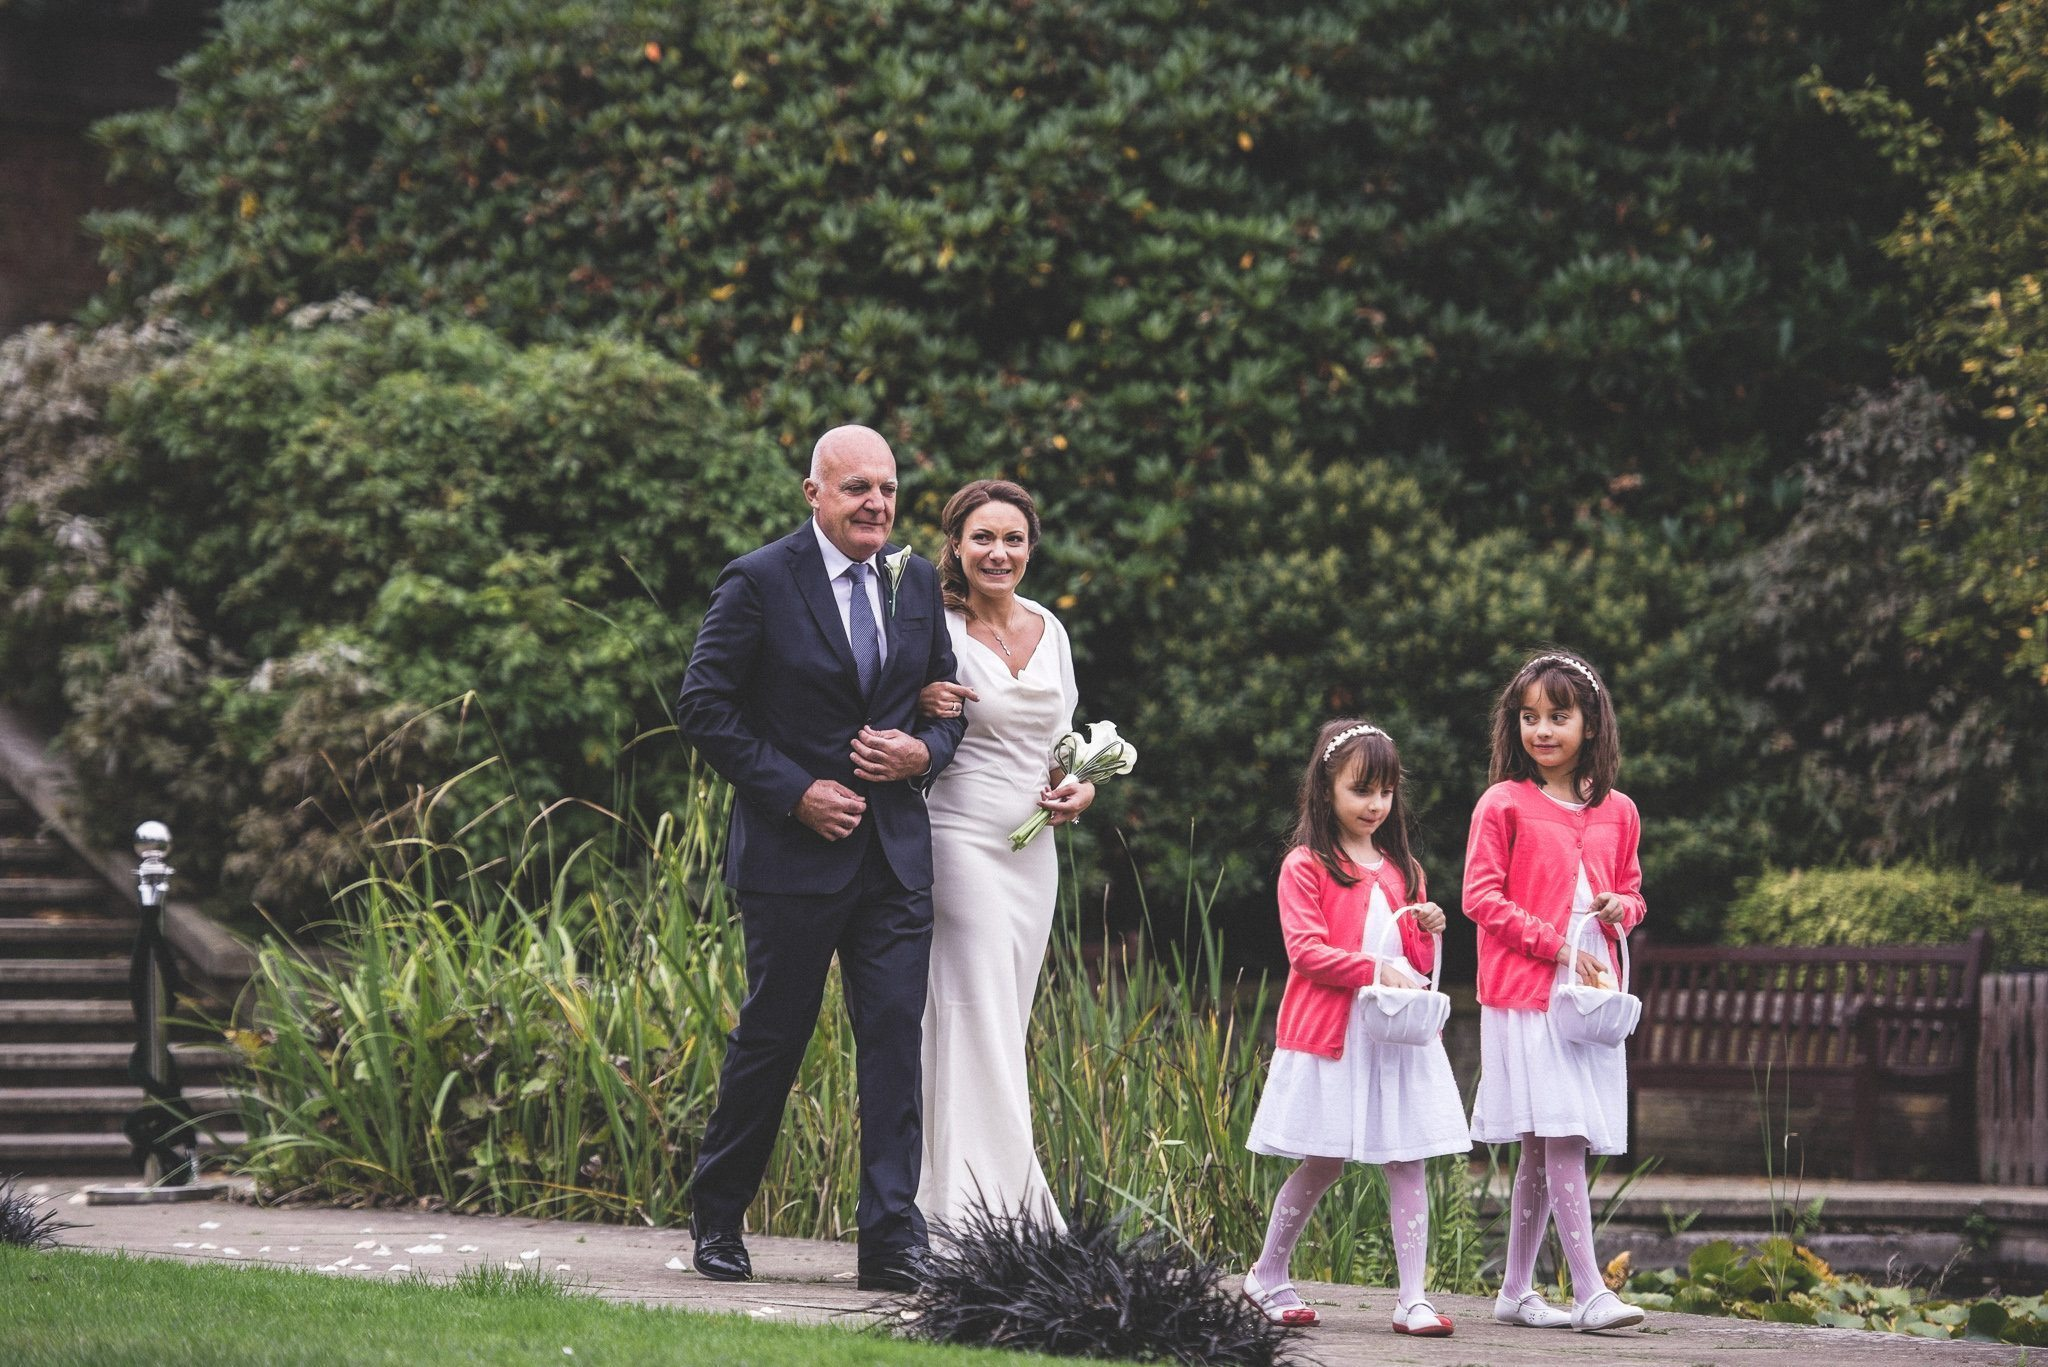 The bride and her father cross to the Pergola, preceded by two flower girls in white dresses and red cardigans, carrying baskets of petals